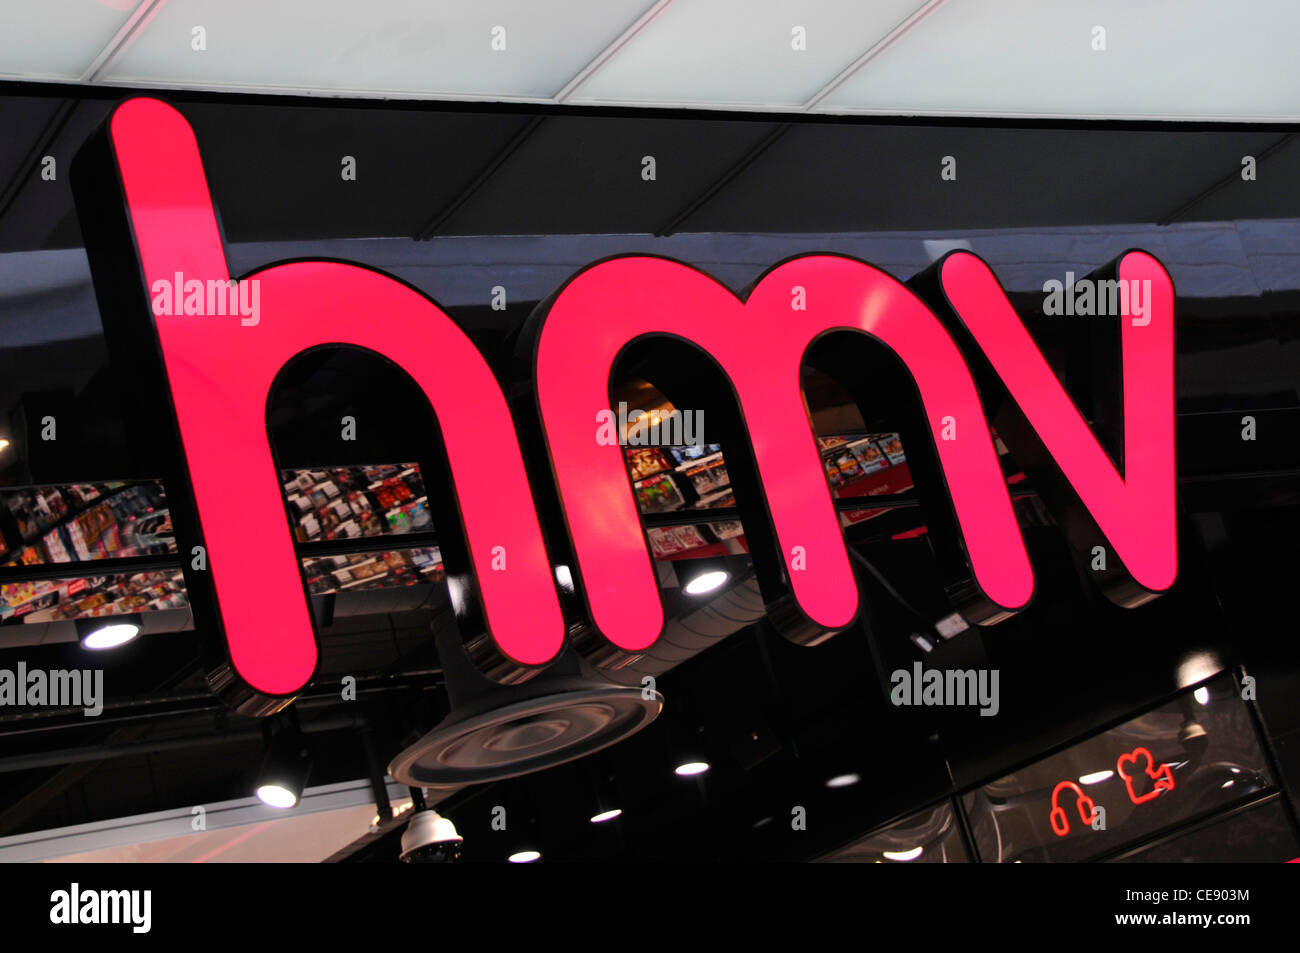 sofaworks westfield stratford sofa bed on cruise ship city branding sign stock photos images hmv uk music retail store shop above entrance in indoor shopping mall